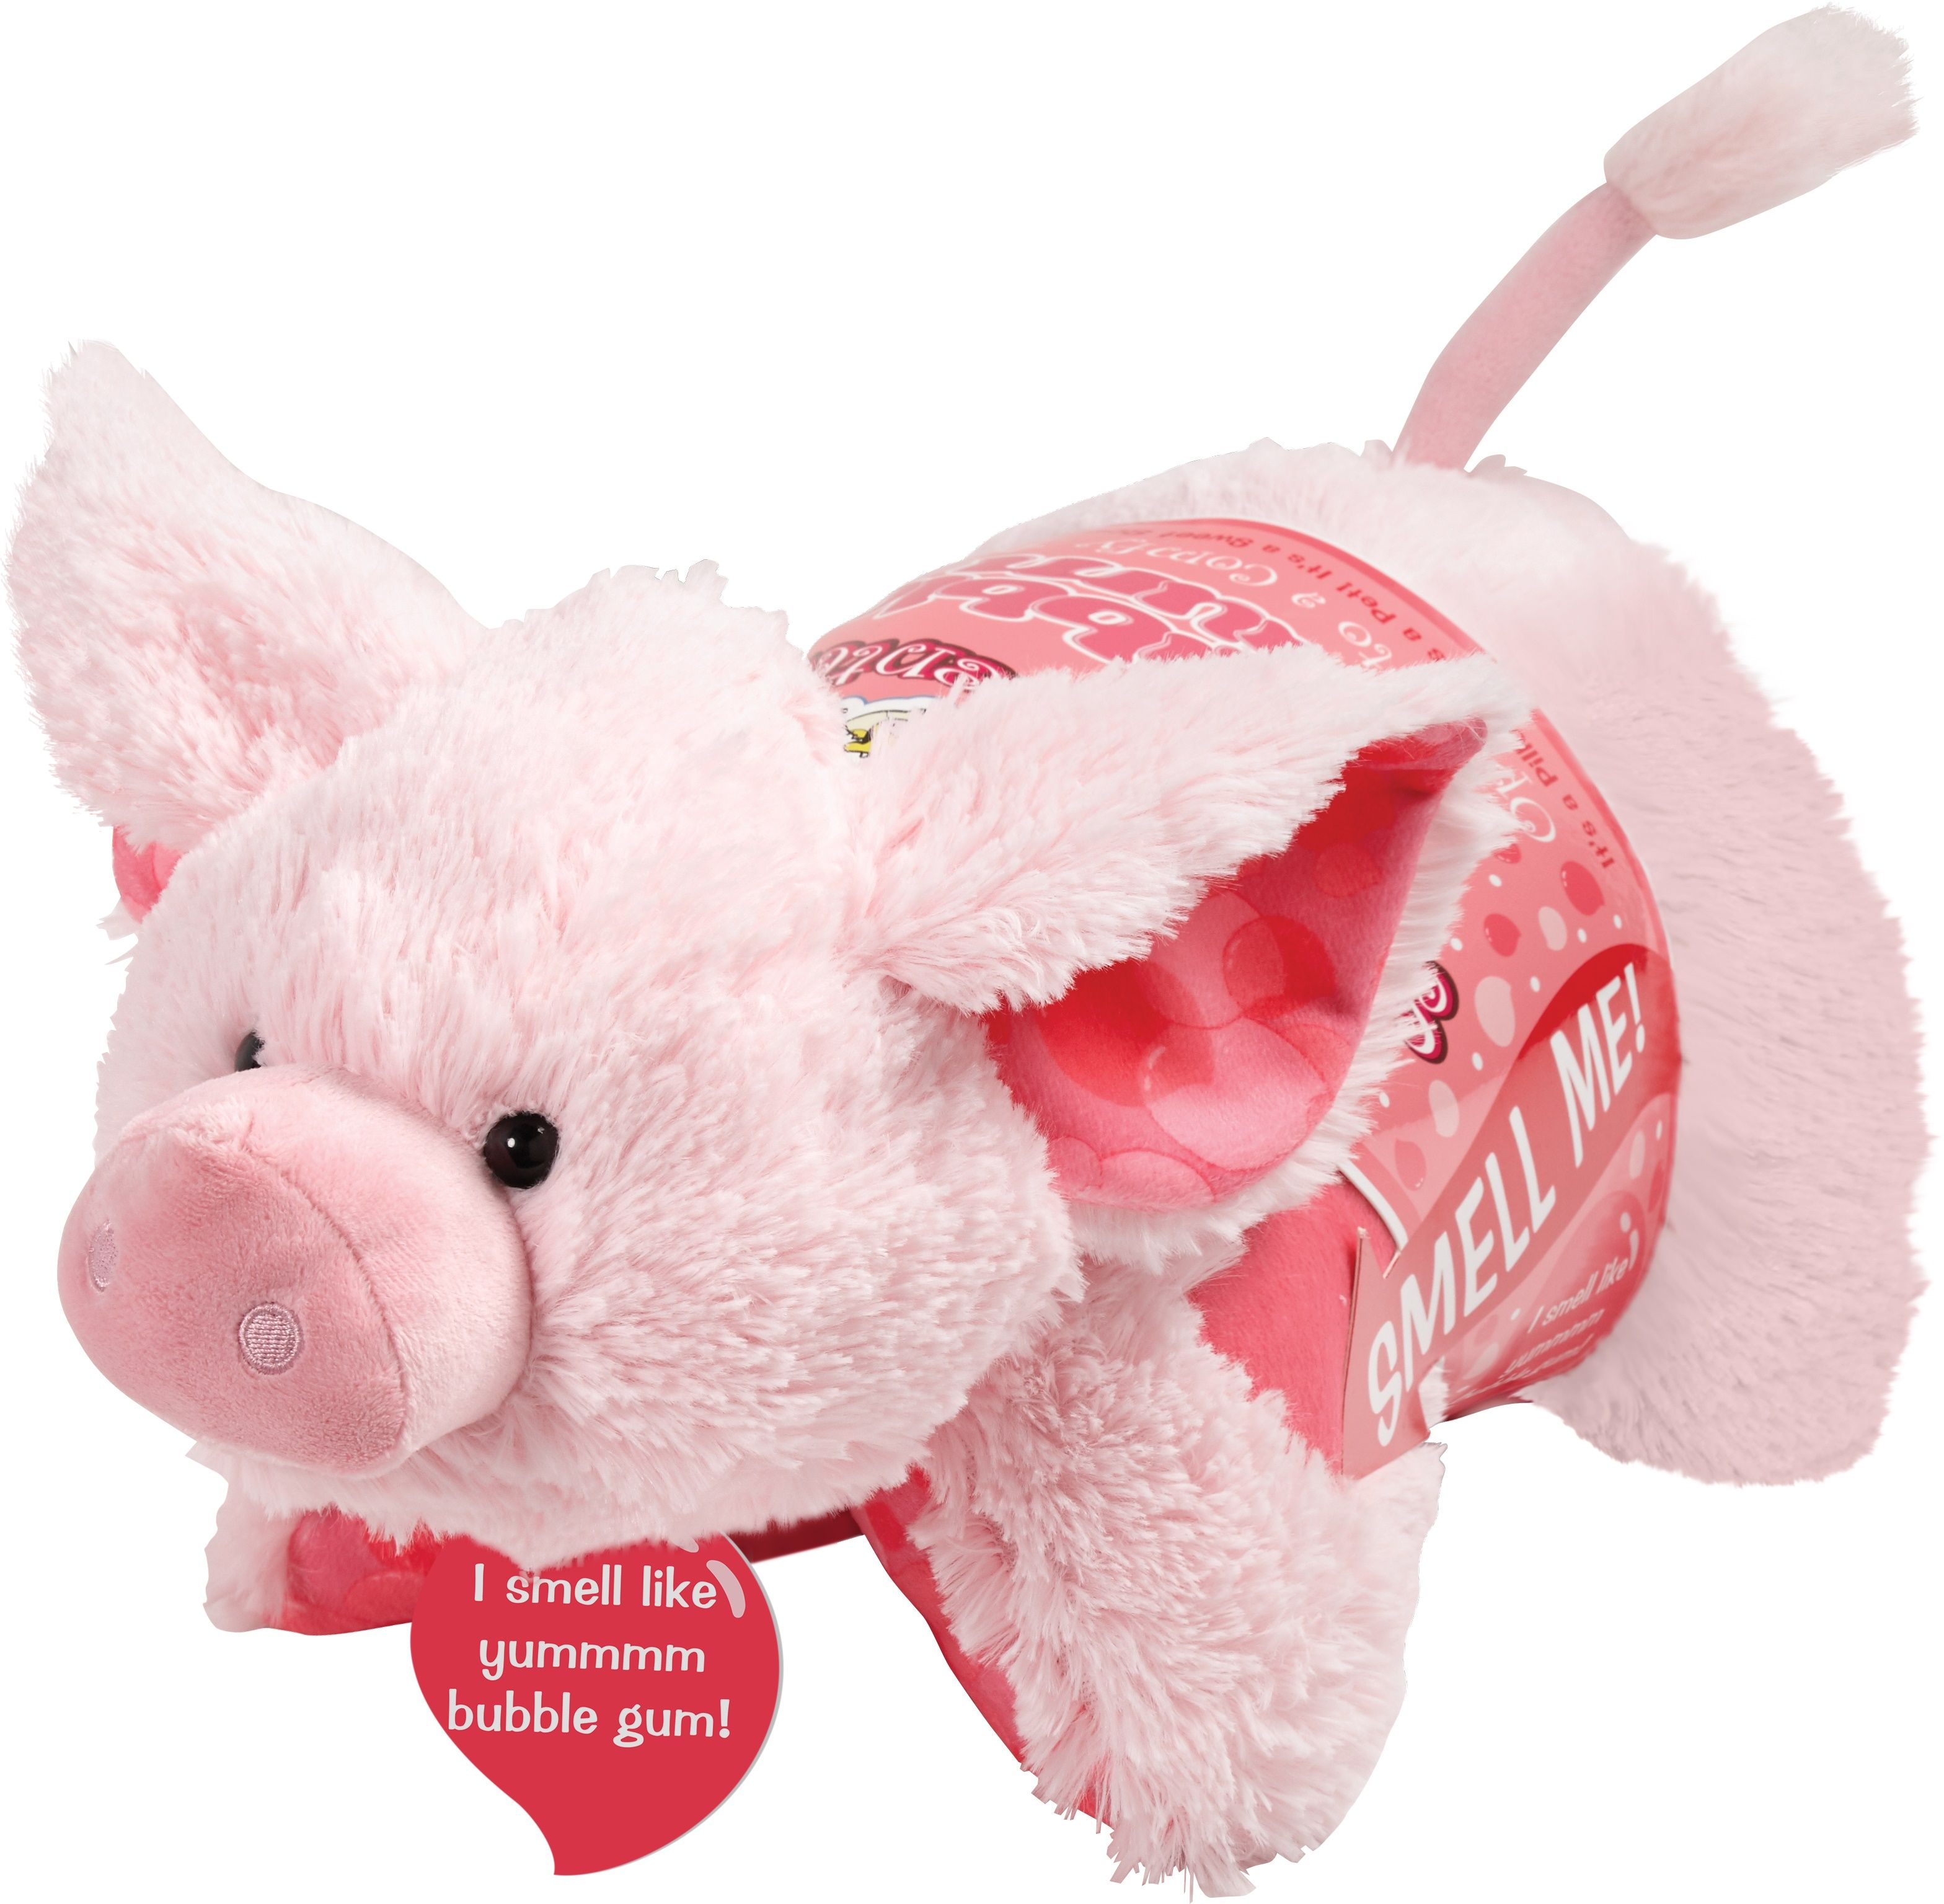 Sweet Scented Pillow Pets Deliver The Smell Of Yummy Sweet Treats In A Plush You Can Hug Subtle Scent Patches In Delicious Flavors Are The Perfect Treat Mainan